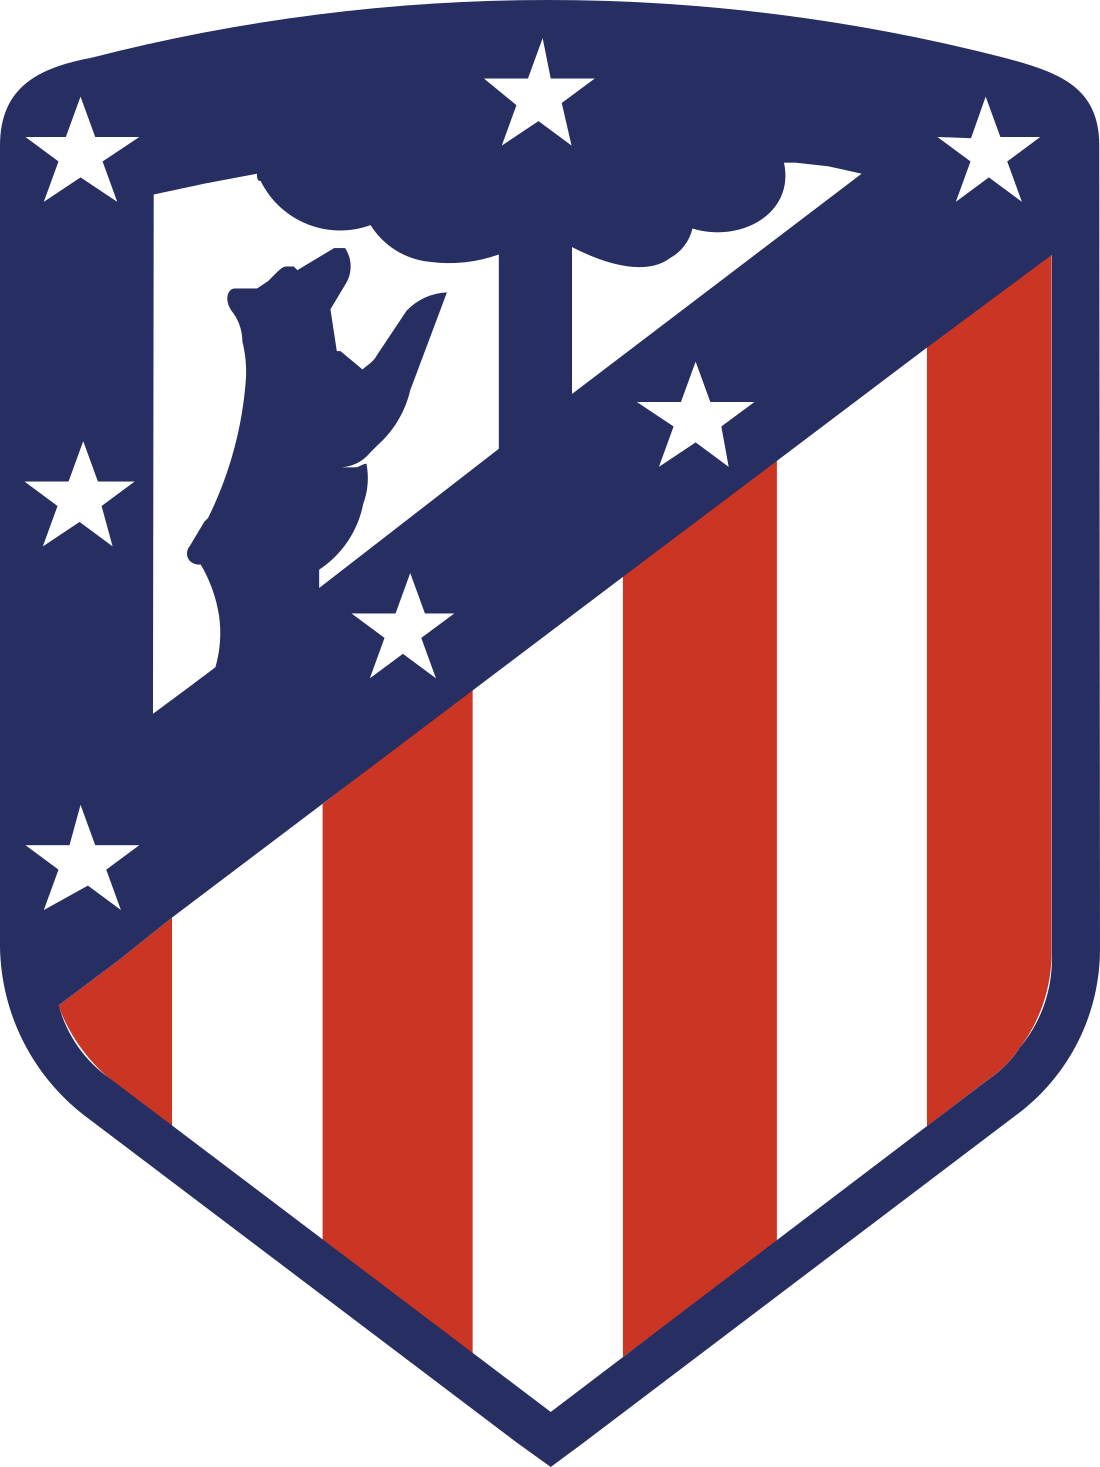 atletico-madrid-logo-3